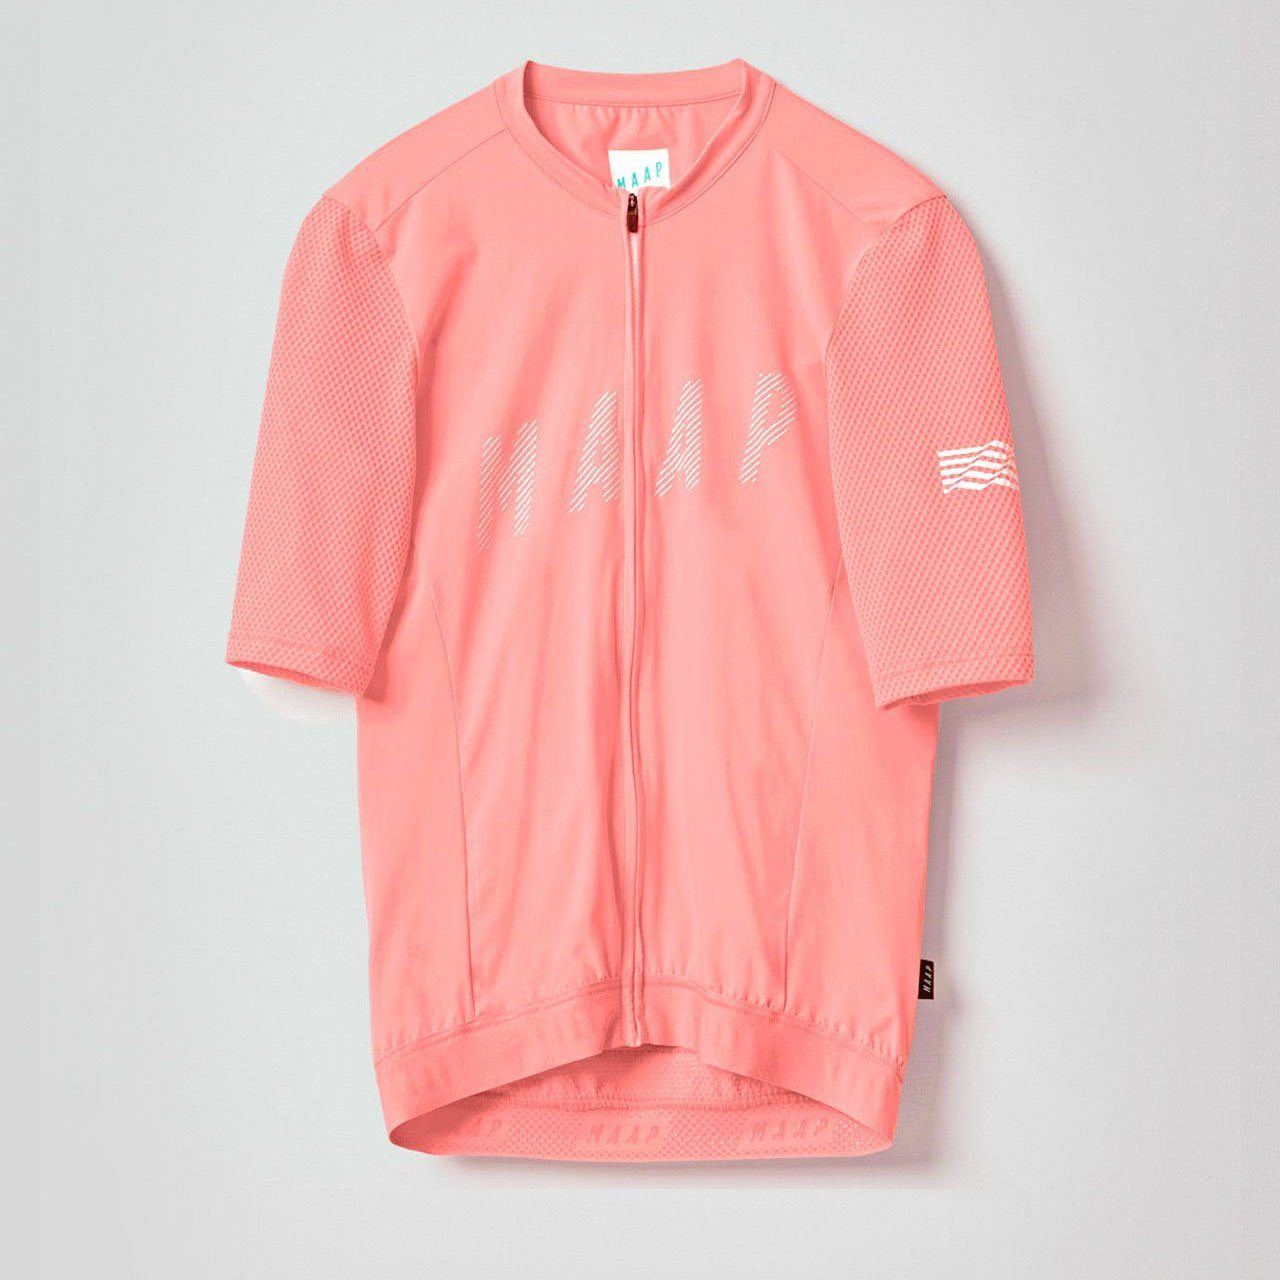 Echo Pro Base Jersey - Light Coral Cycling Jersey MAAP XS